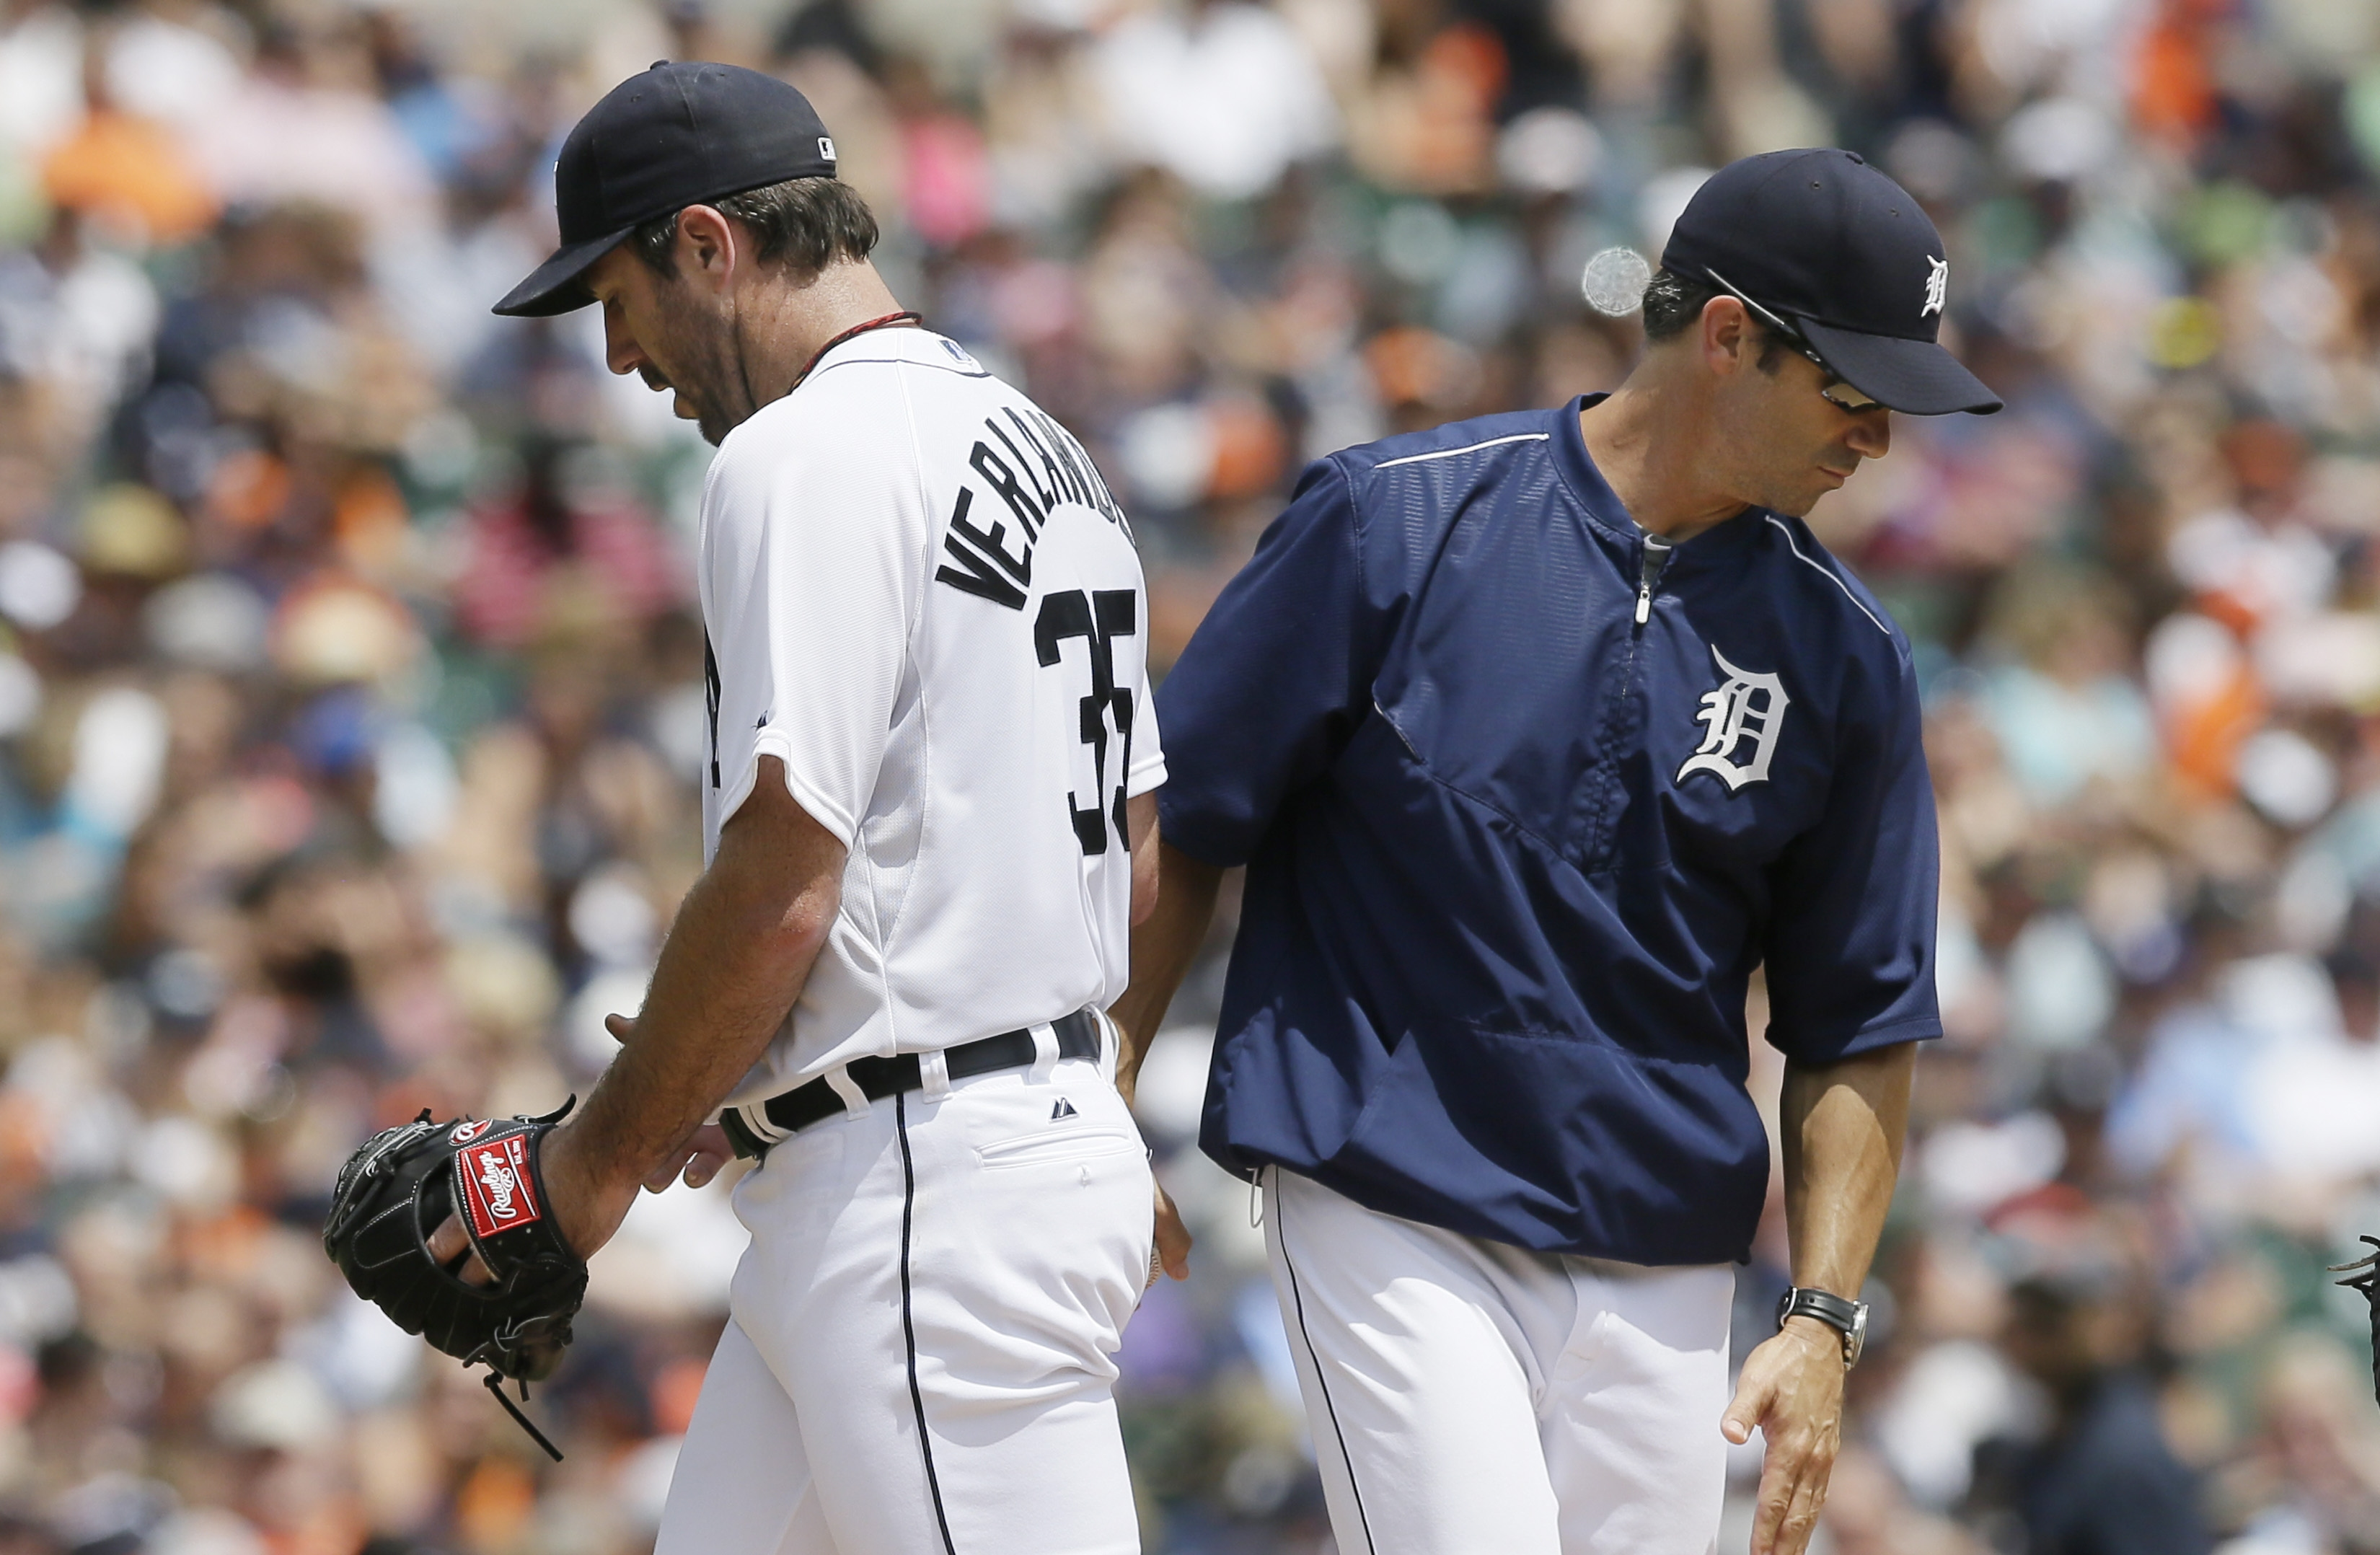 Detroit Tigers starting pitcher Justin Verlander, left, is relieved by manager Brad Ausmus during the fourth inning of a baseball game against the Baltimore Orioles, Sunday, July 19, 2015, in Detroit. (AP Photo/Carlos Osorio)